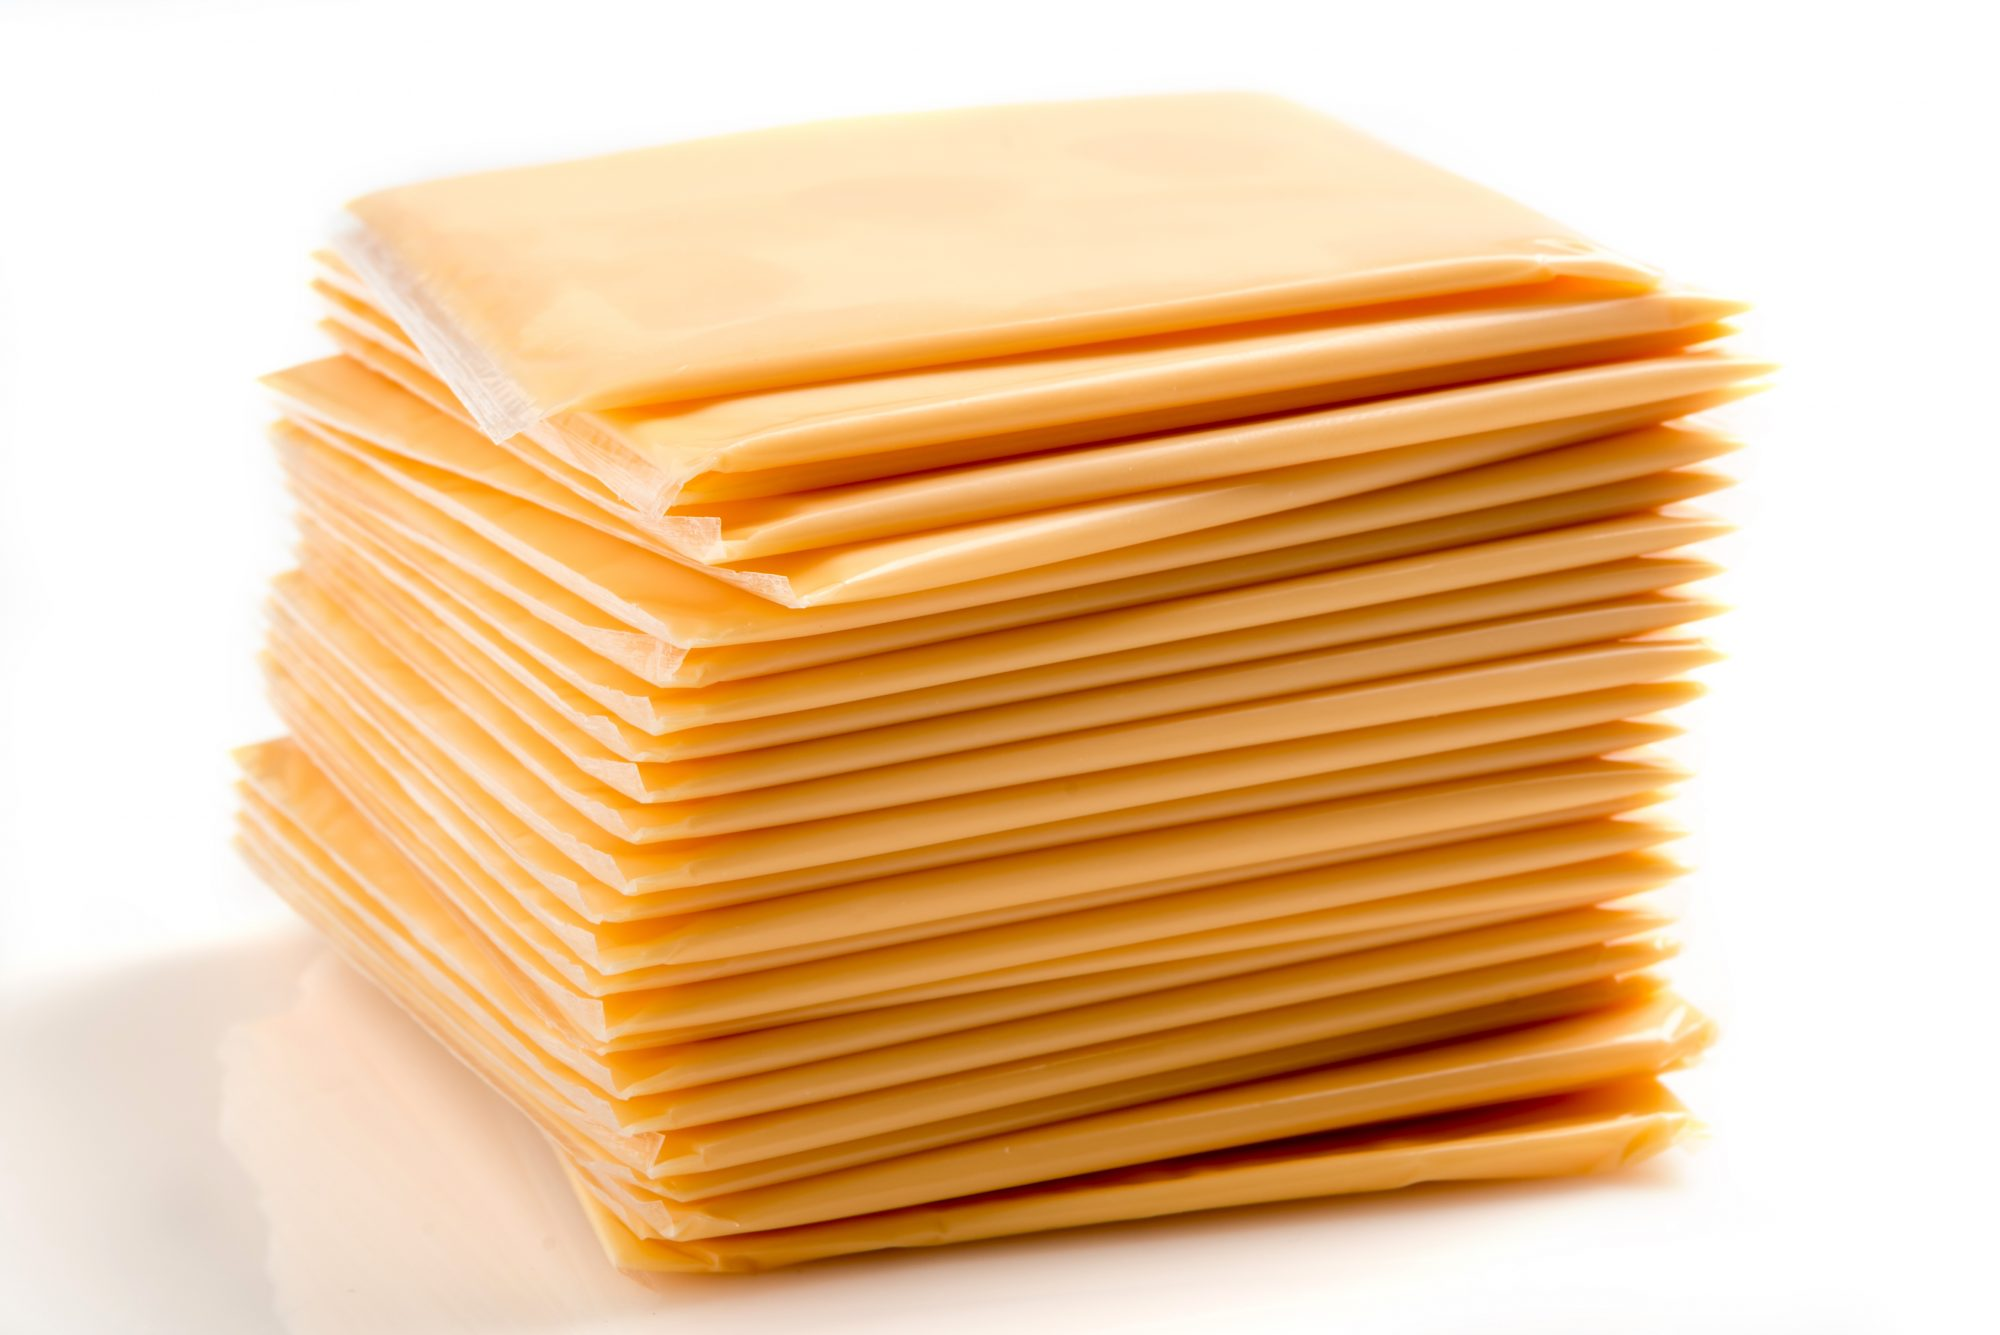 Heap of Sliced American Yellow Cheese